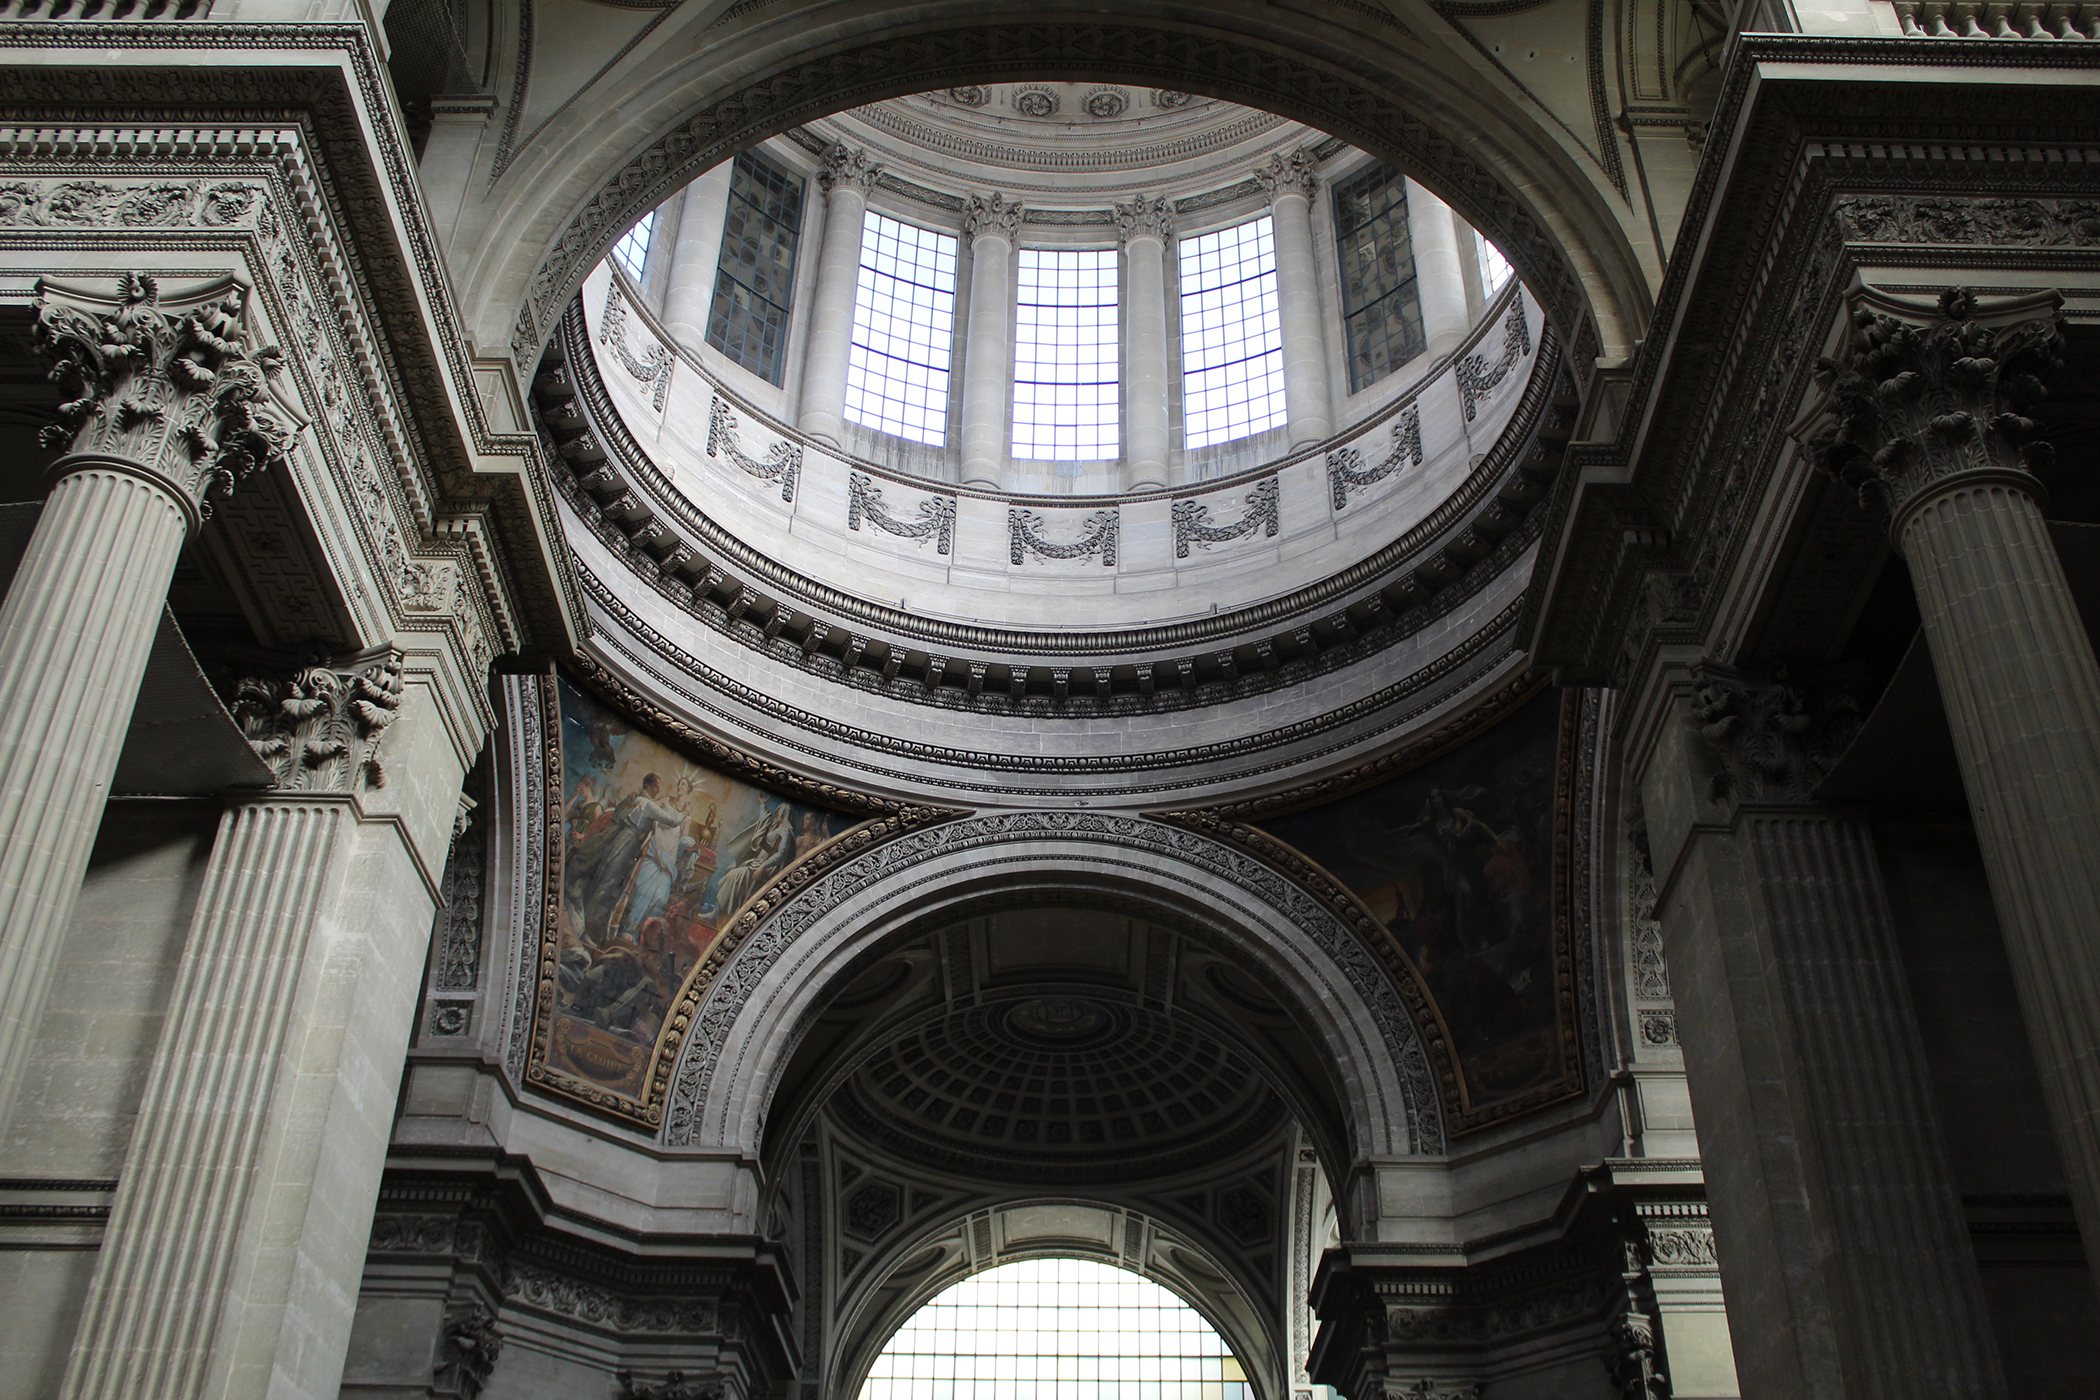 The oculus of the Panthéon with columns on either side of it.